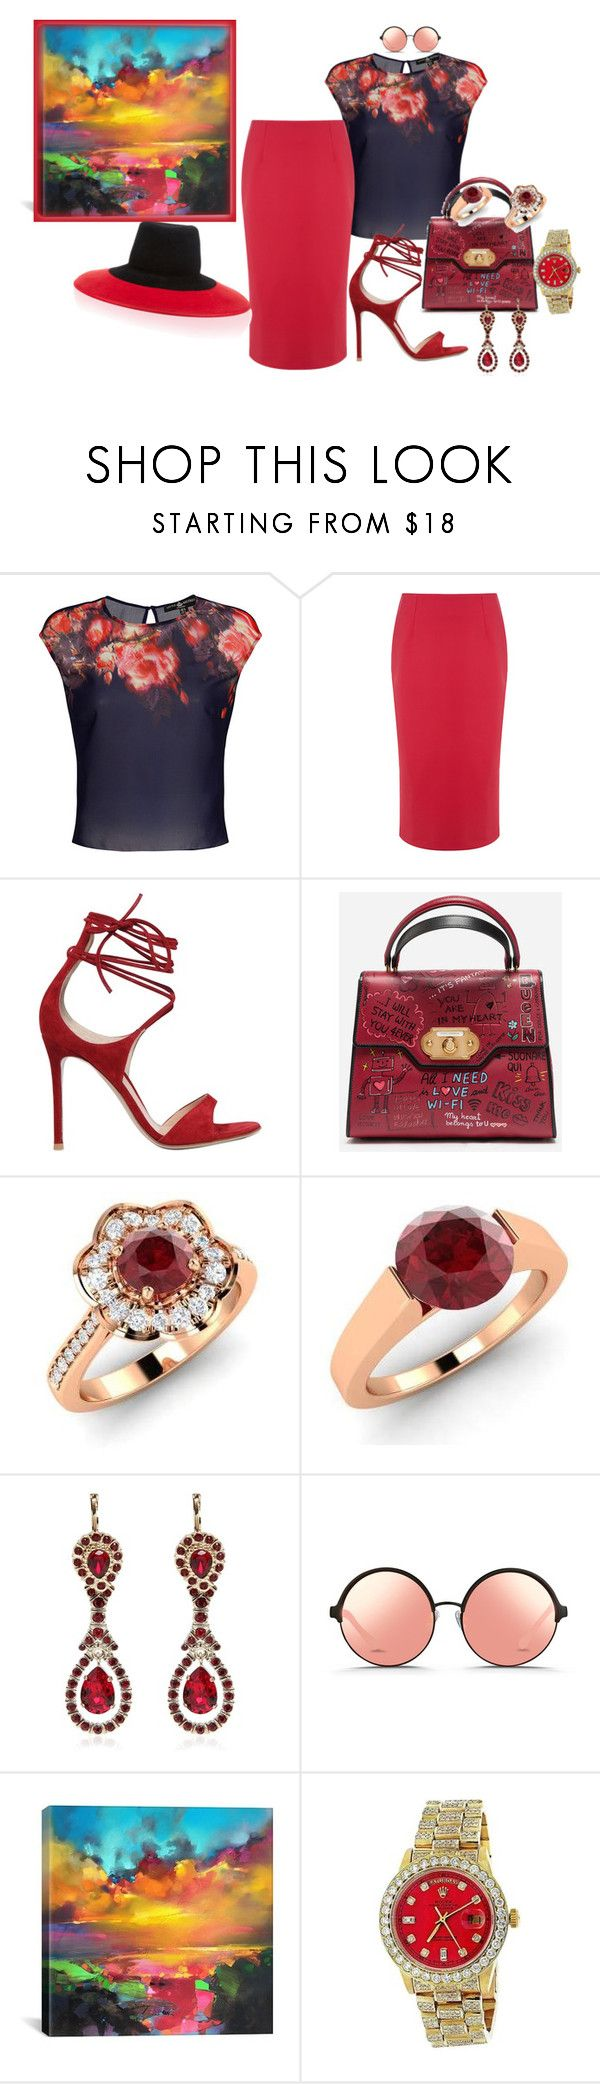 """""""Something especially for you"""" by blujay1126 ❤ liked on Polyvore featuring Être Cécile, Gianvito Rossi, Dolce&Gabbana, Diamondere, Givenchy, Matthew Williamson, iCanvas and Rolex"""